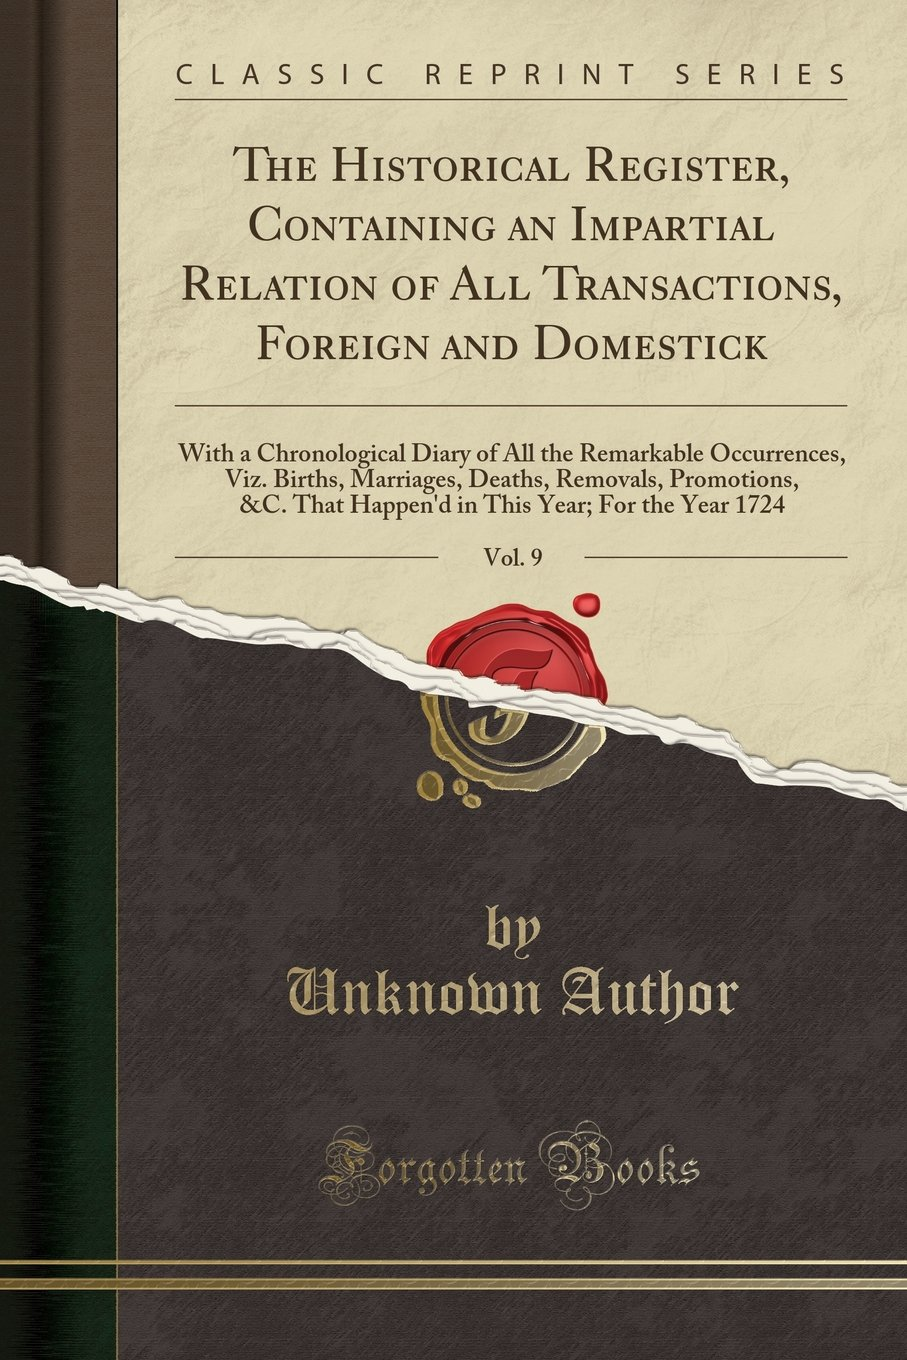 Read Online The Historical Register, Containing an Impartial Relation of All Transactions, Foreign and Domestick, Vol. 9: With a Chronological Diary of All the ... Promotions, &C. That Happen'd in This Yea PDF